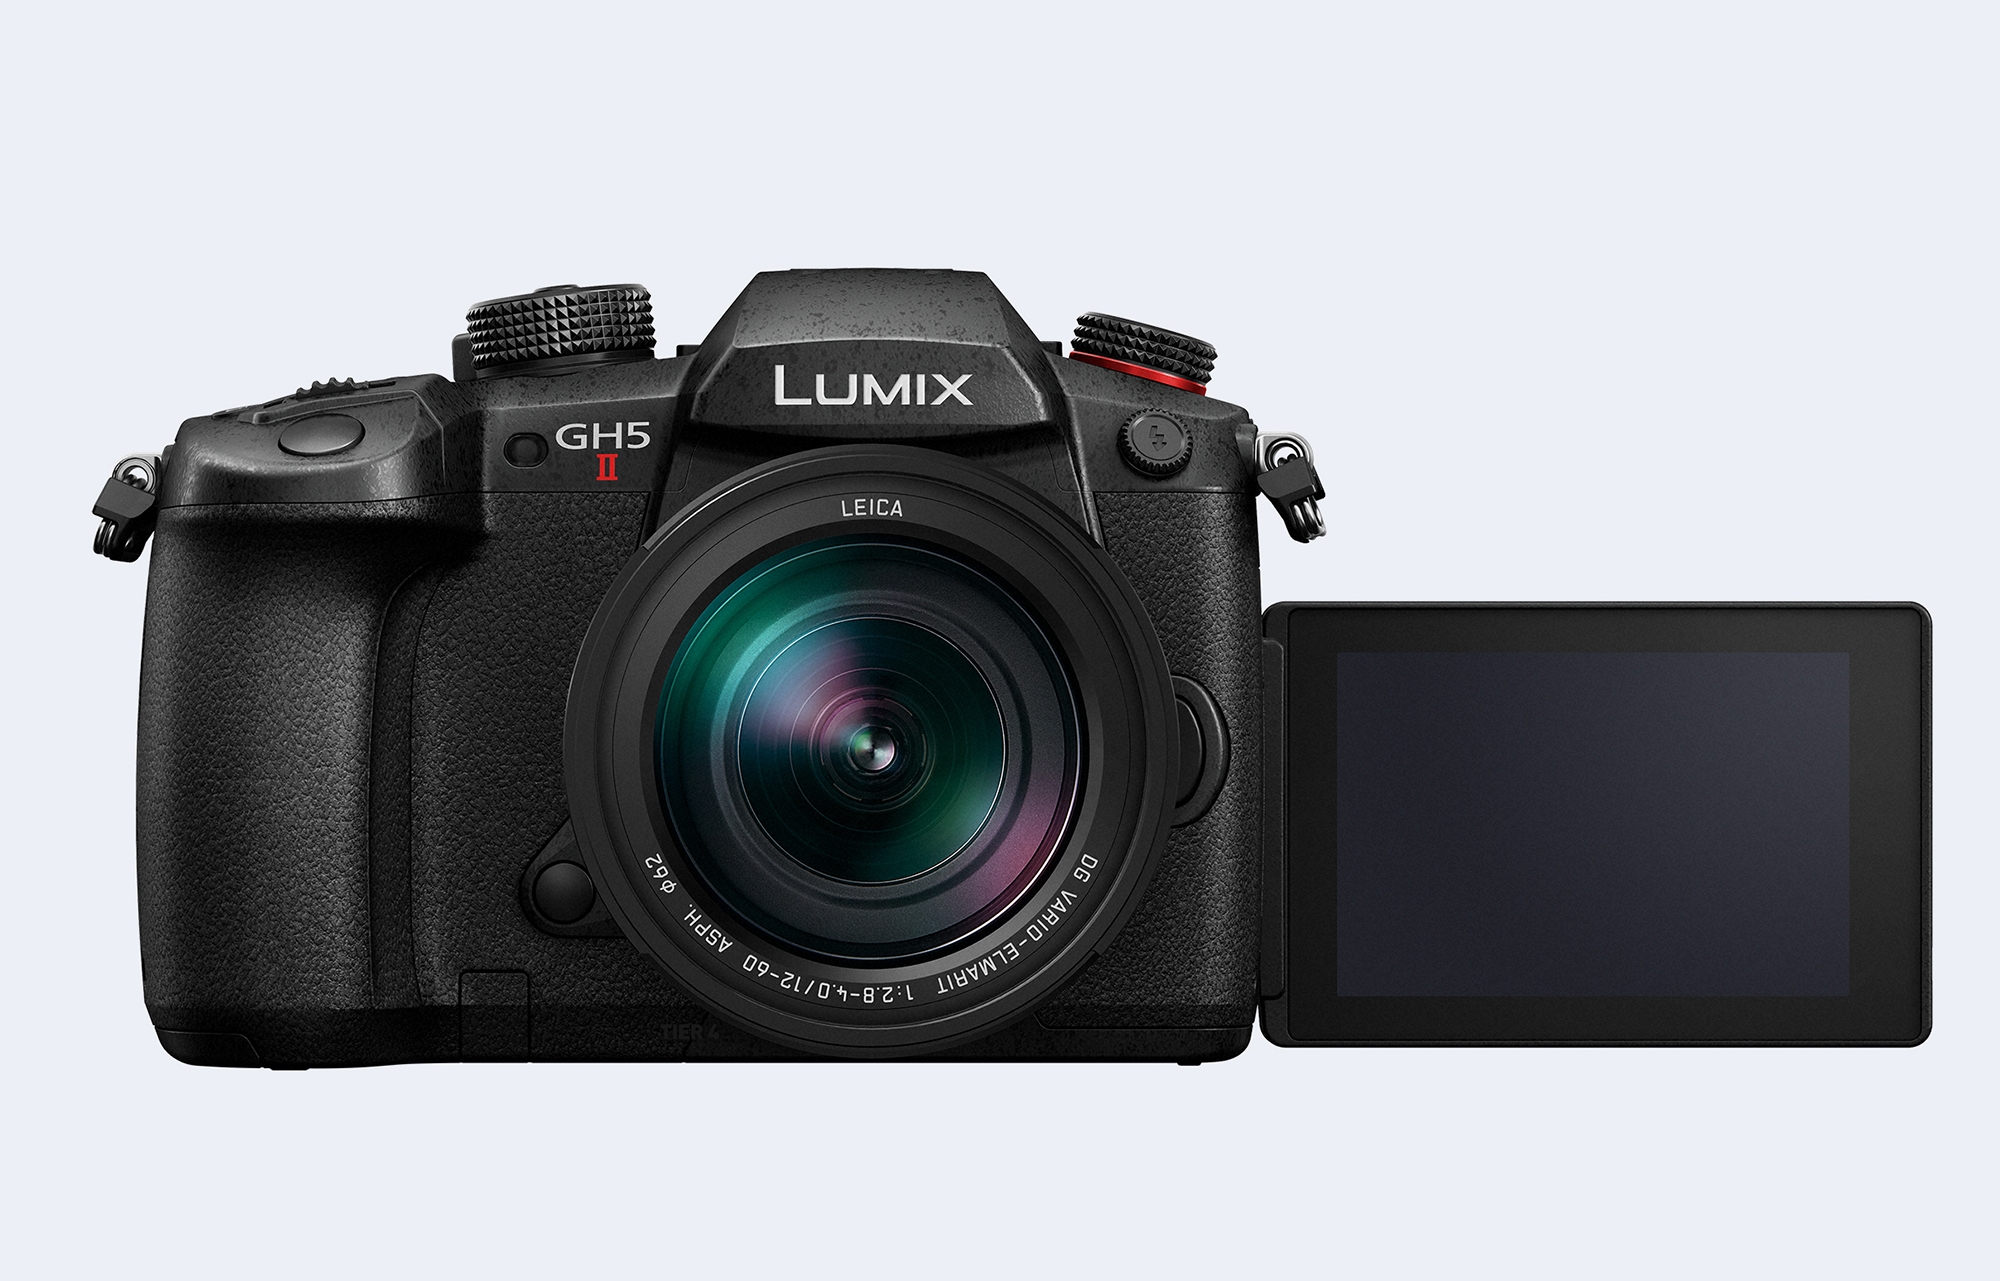 Panasonic's GH5 II refresh boosts 4K video quality and adds live streaming | Engadget